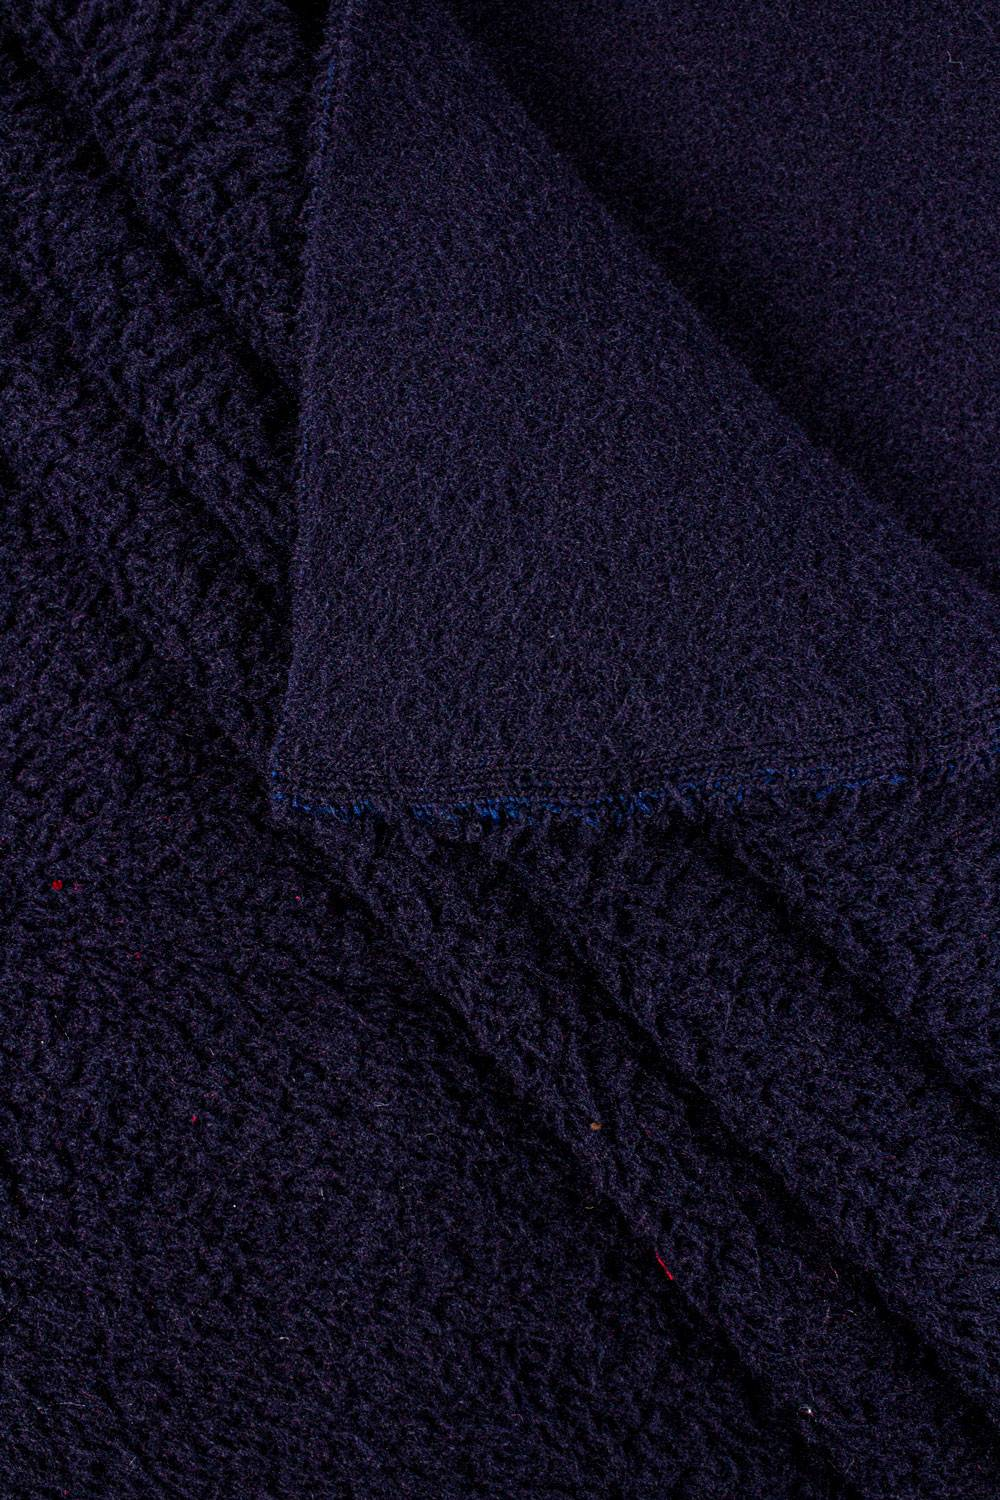 Knit - Fleece - Thick - Navy Blue - 145 cm - 400 g/m2